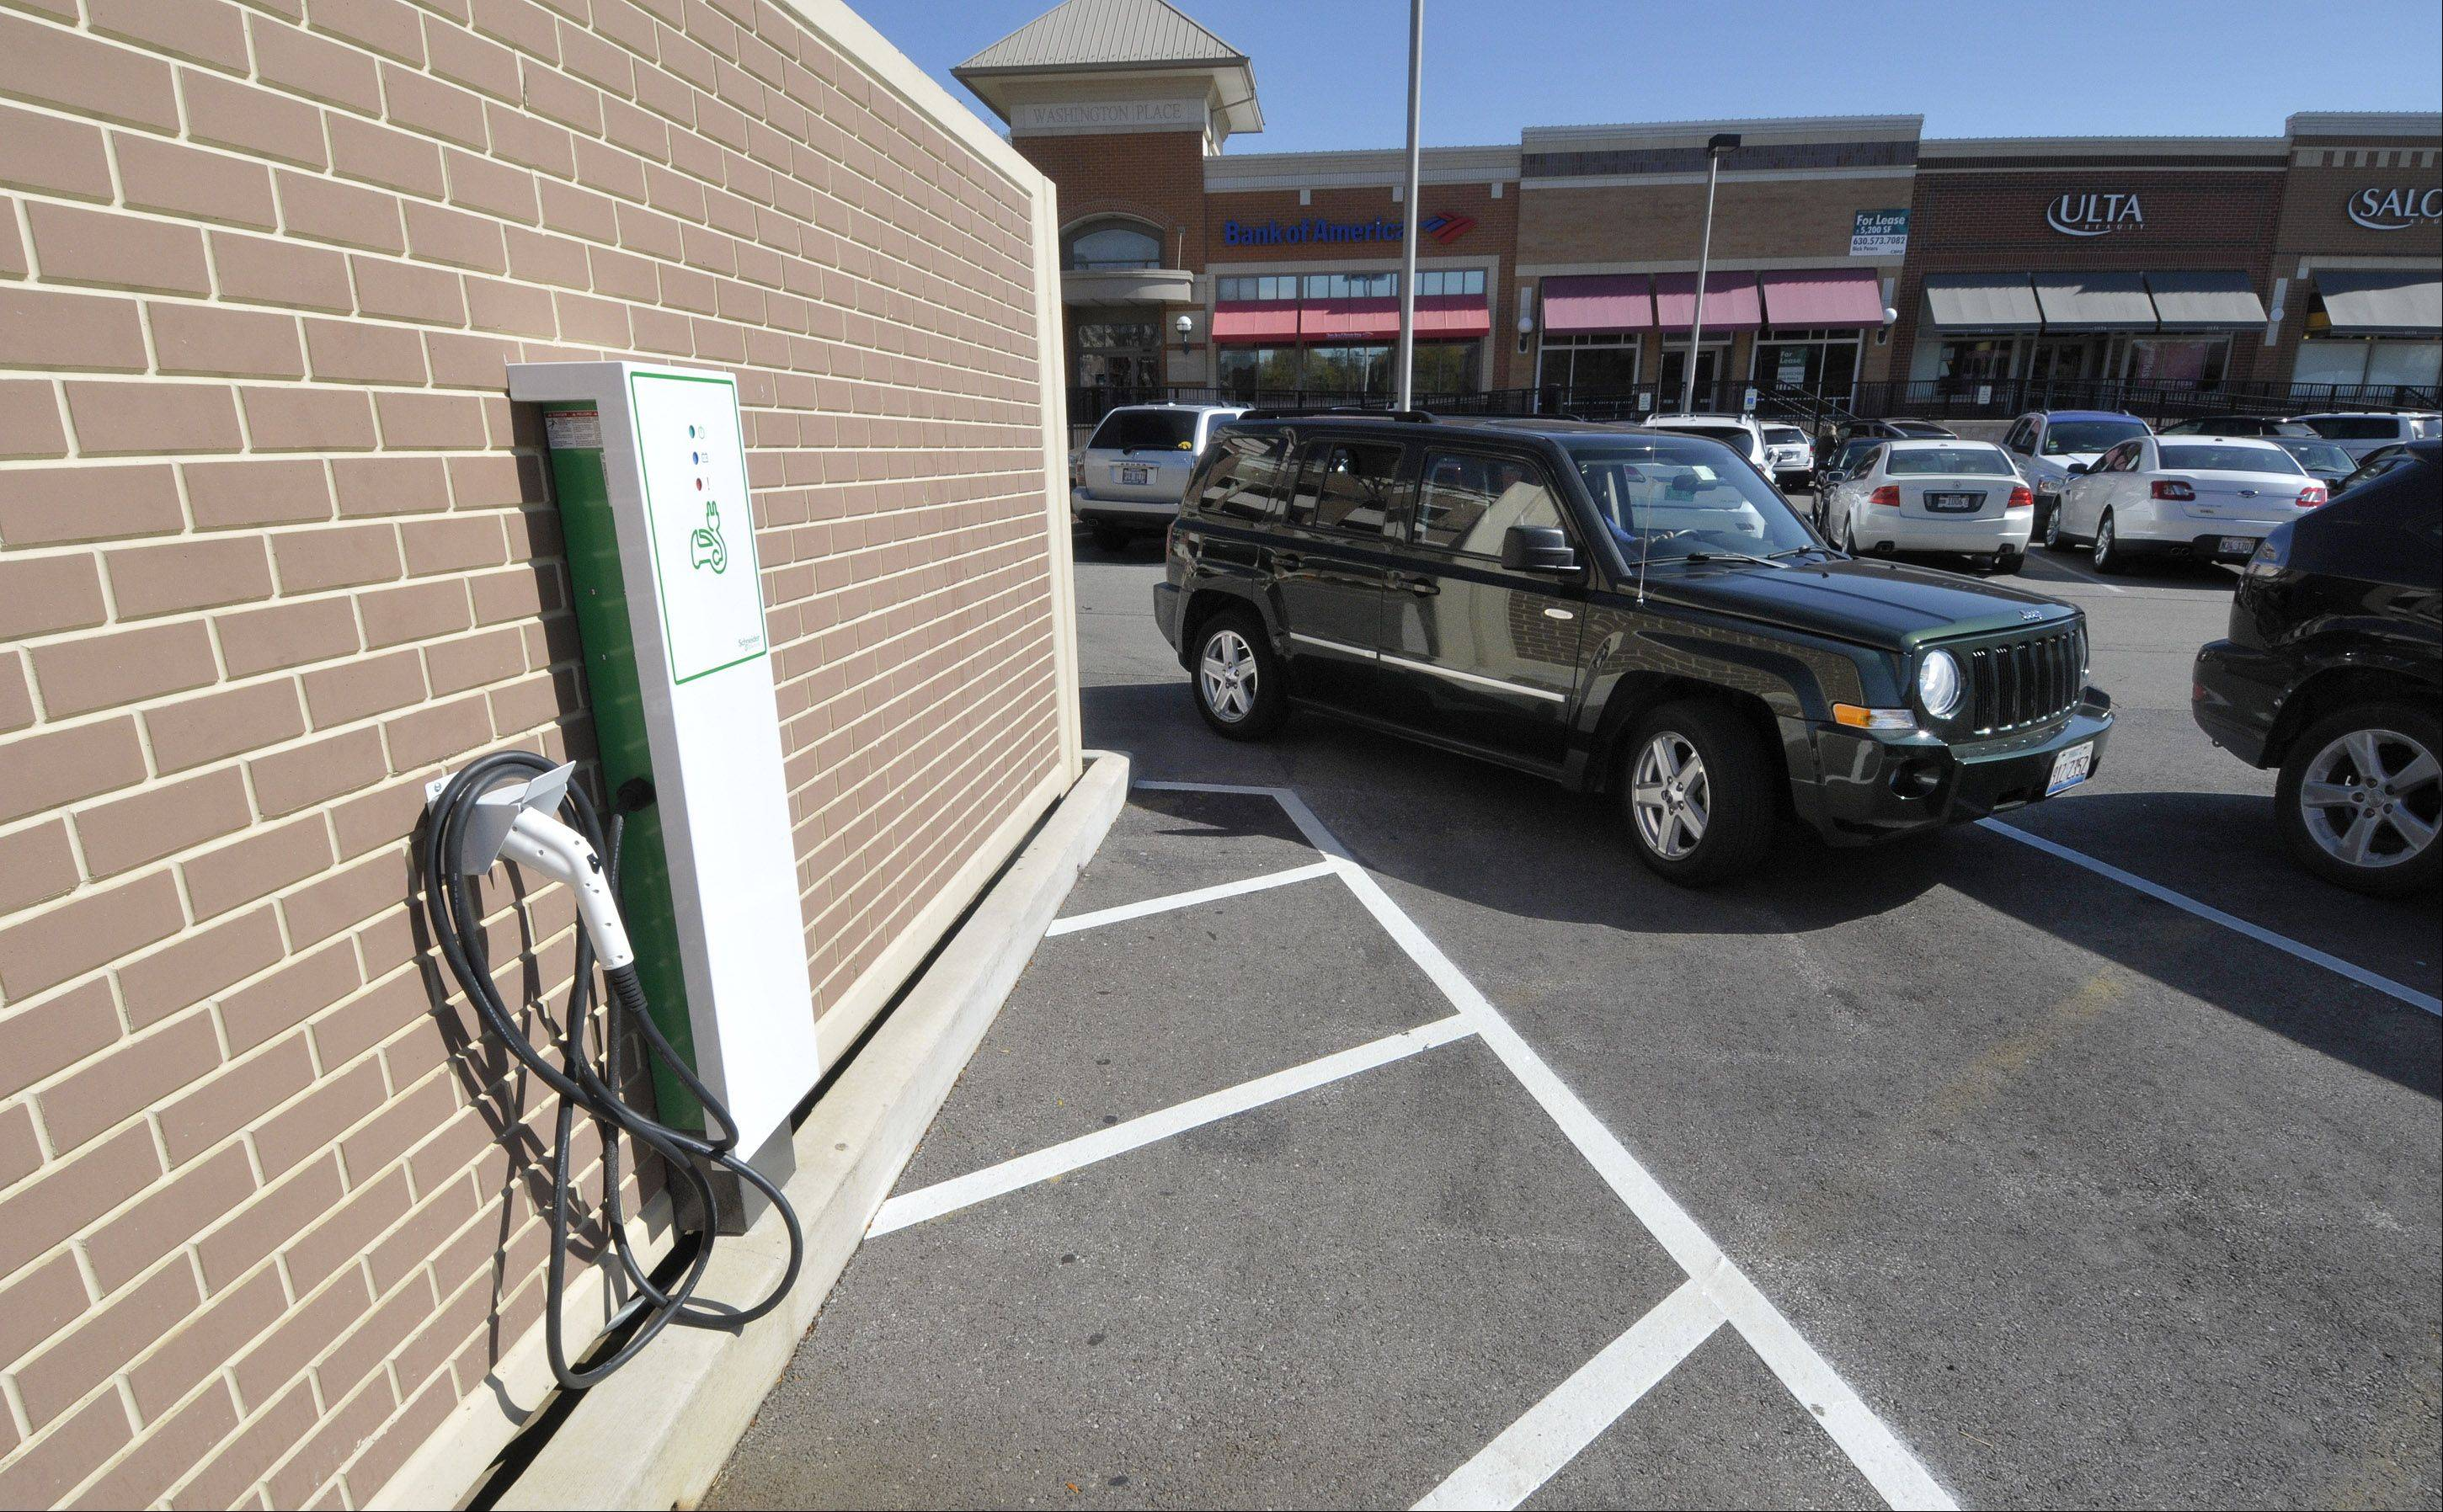 Naperville City Council will discuss a proposal Tuesday to add three downtown charging stations for electric vehicles.